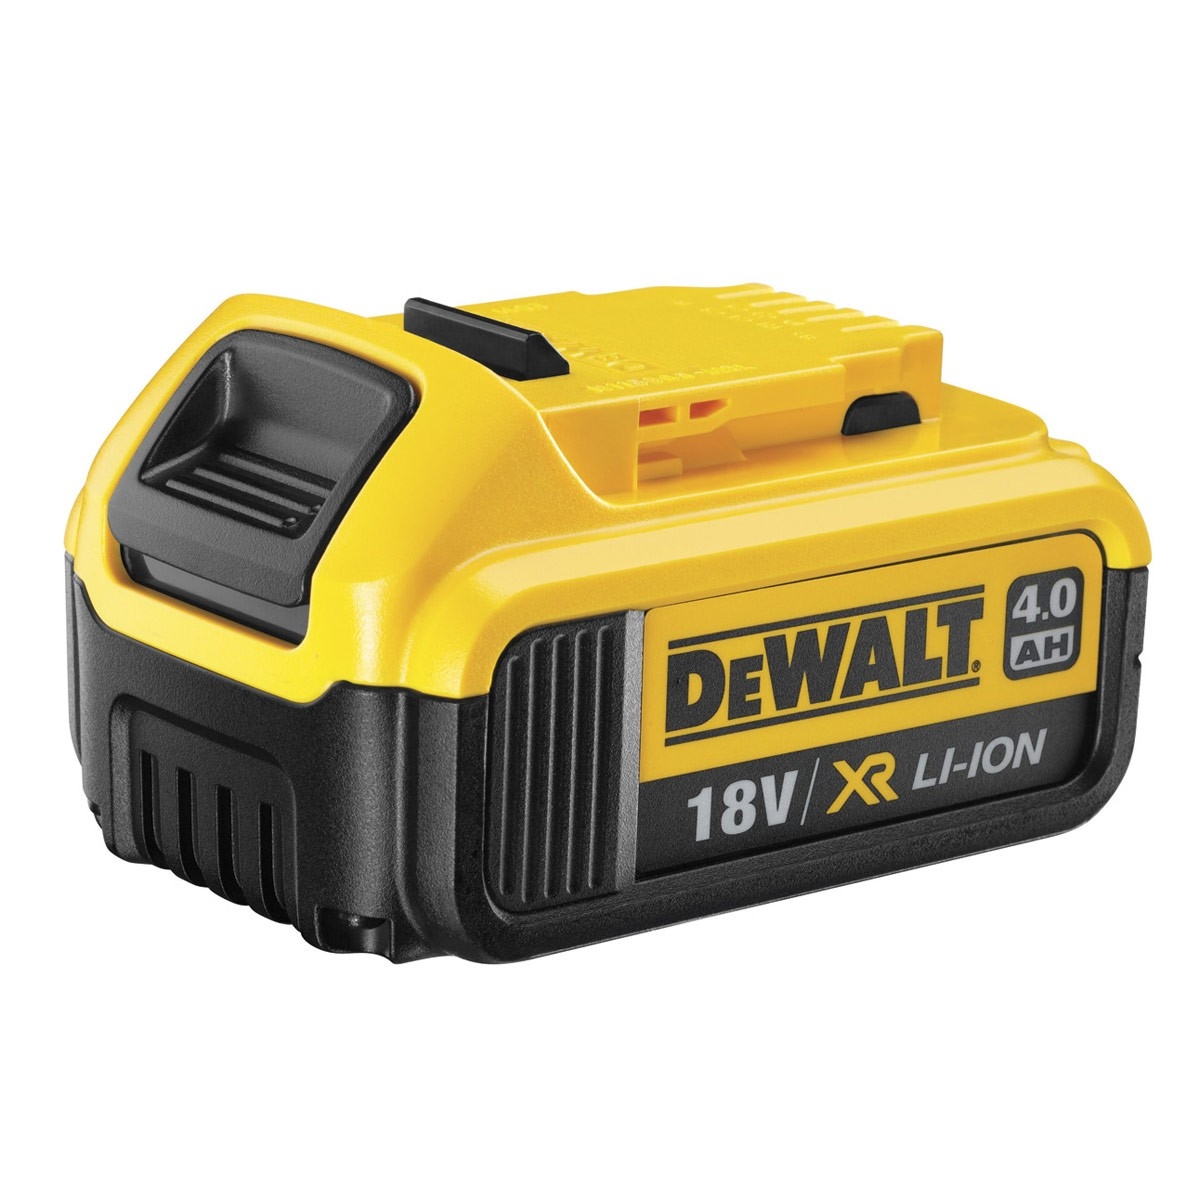 Dewalt Dcb182 18v Xr Slide 4 0ah Li Ion Battery